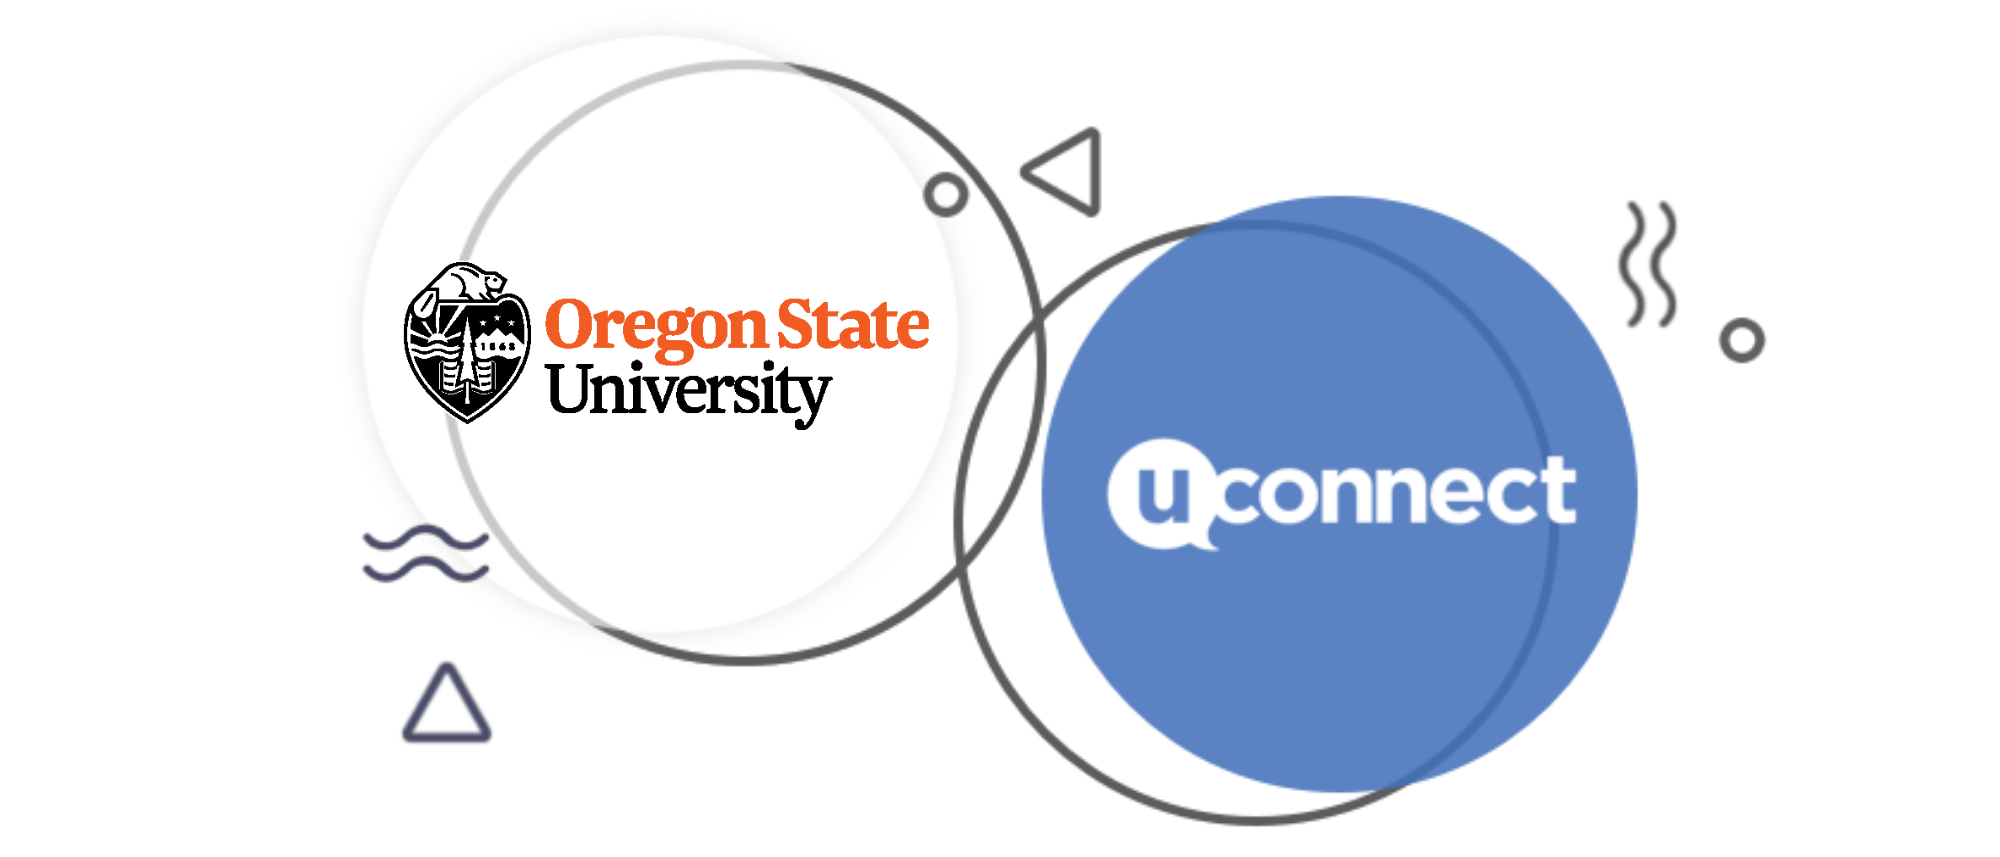 Oregon State Ecampus Launches Virtual Career Center, Bringing Comprehensive Career Services to Students Across the Globe